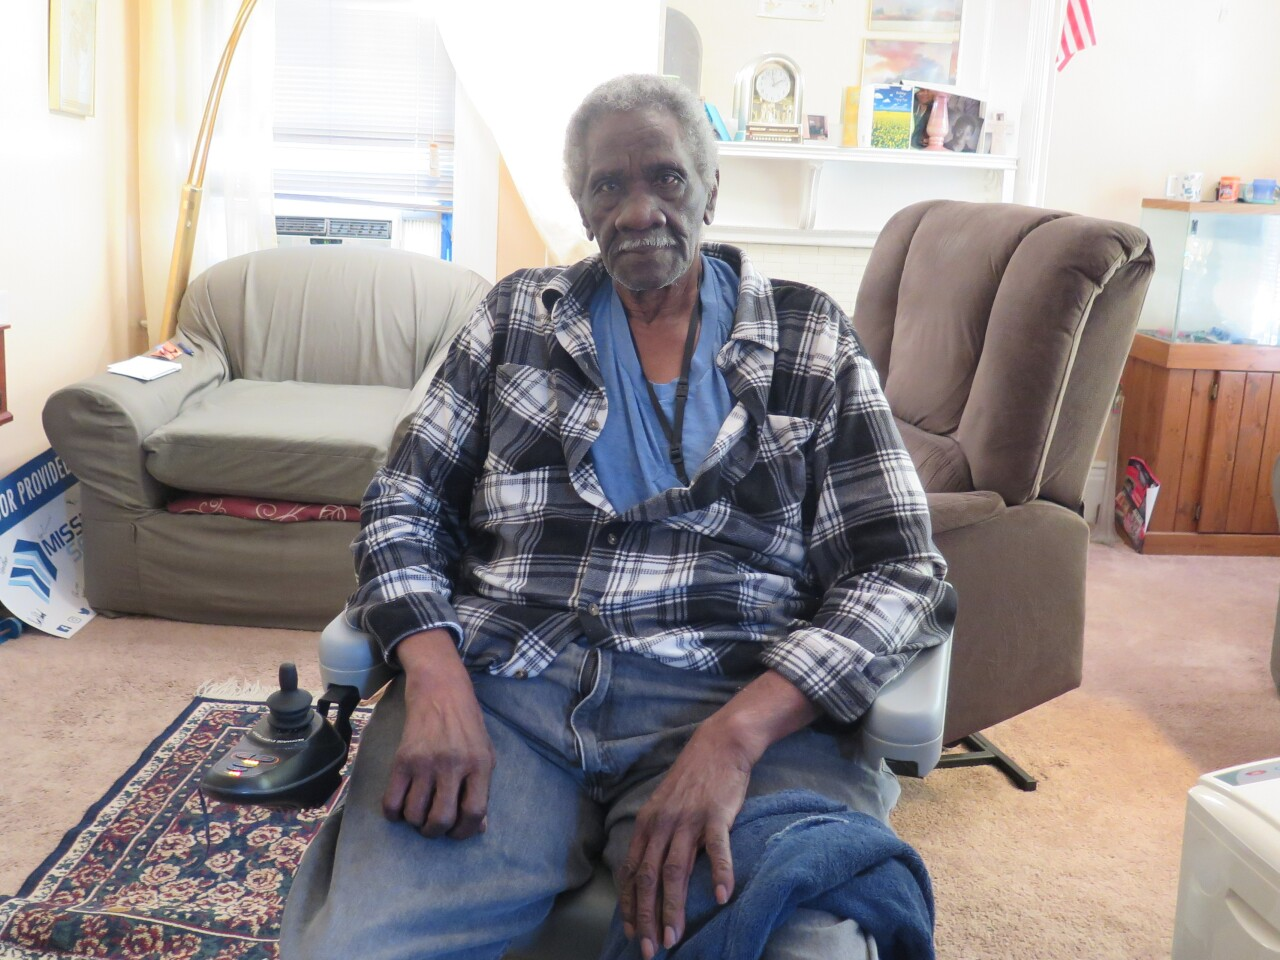 Robert McCrary poses in the living room of his Avondale home. A patterned rug and two chairs are visible behind him.